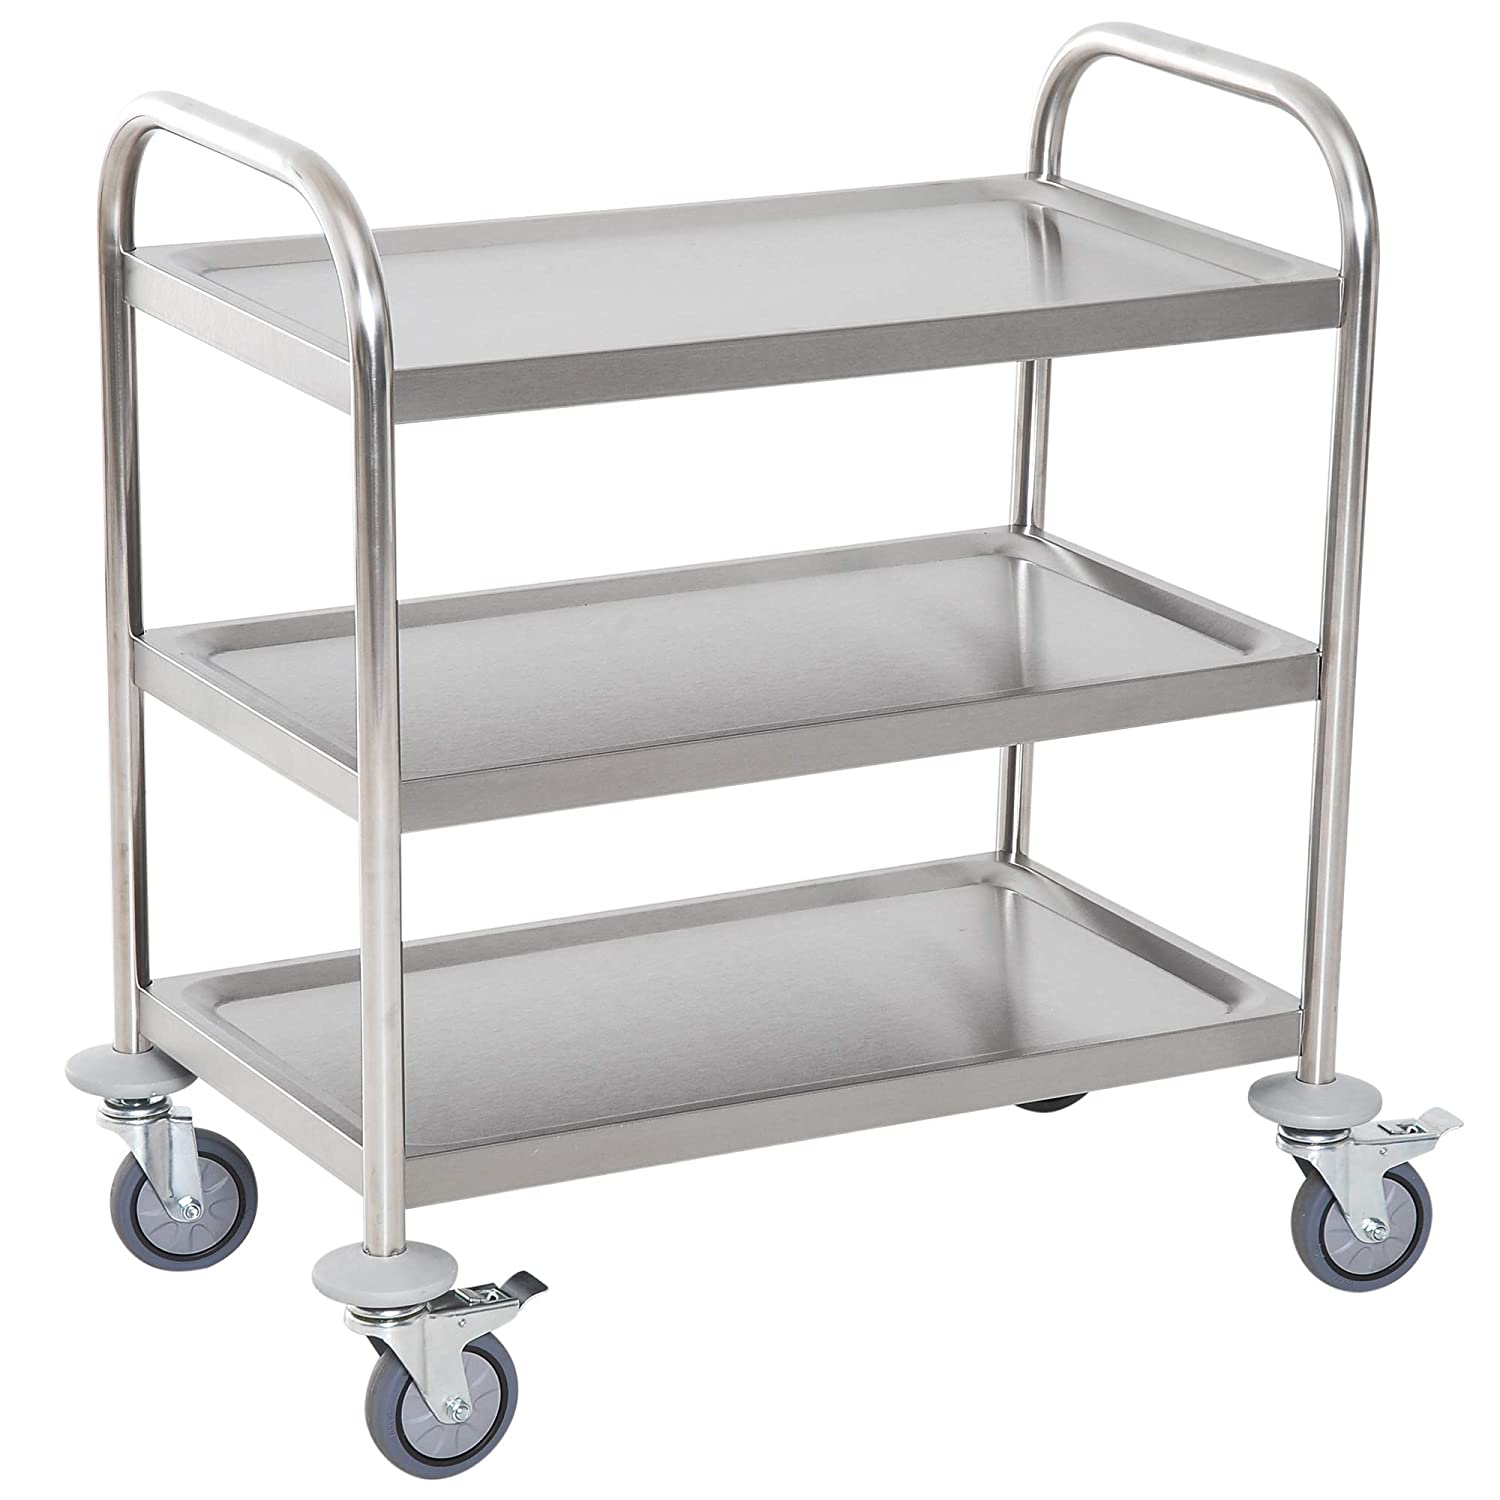 HOMCOM Stainless Steel 3 Tier Rolling Kitchen Service Cart Catering Storage Trolley Island Utility with Locking Wheels for Hotels Restaurants 70.5L x 40.5D x 81H (cm) Sold by MHSTAR